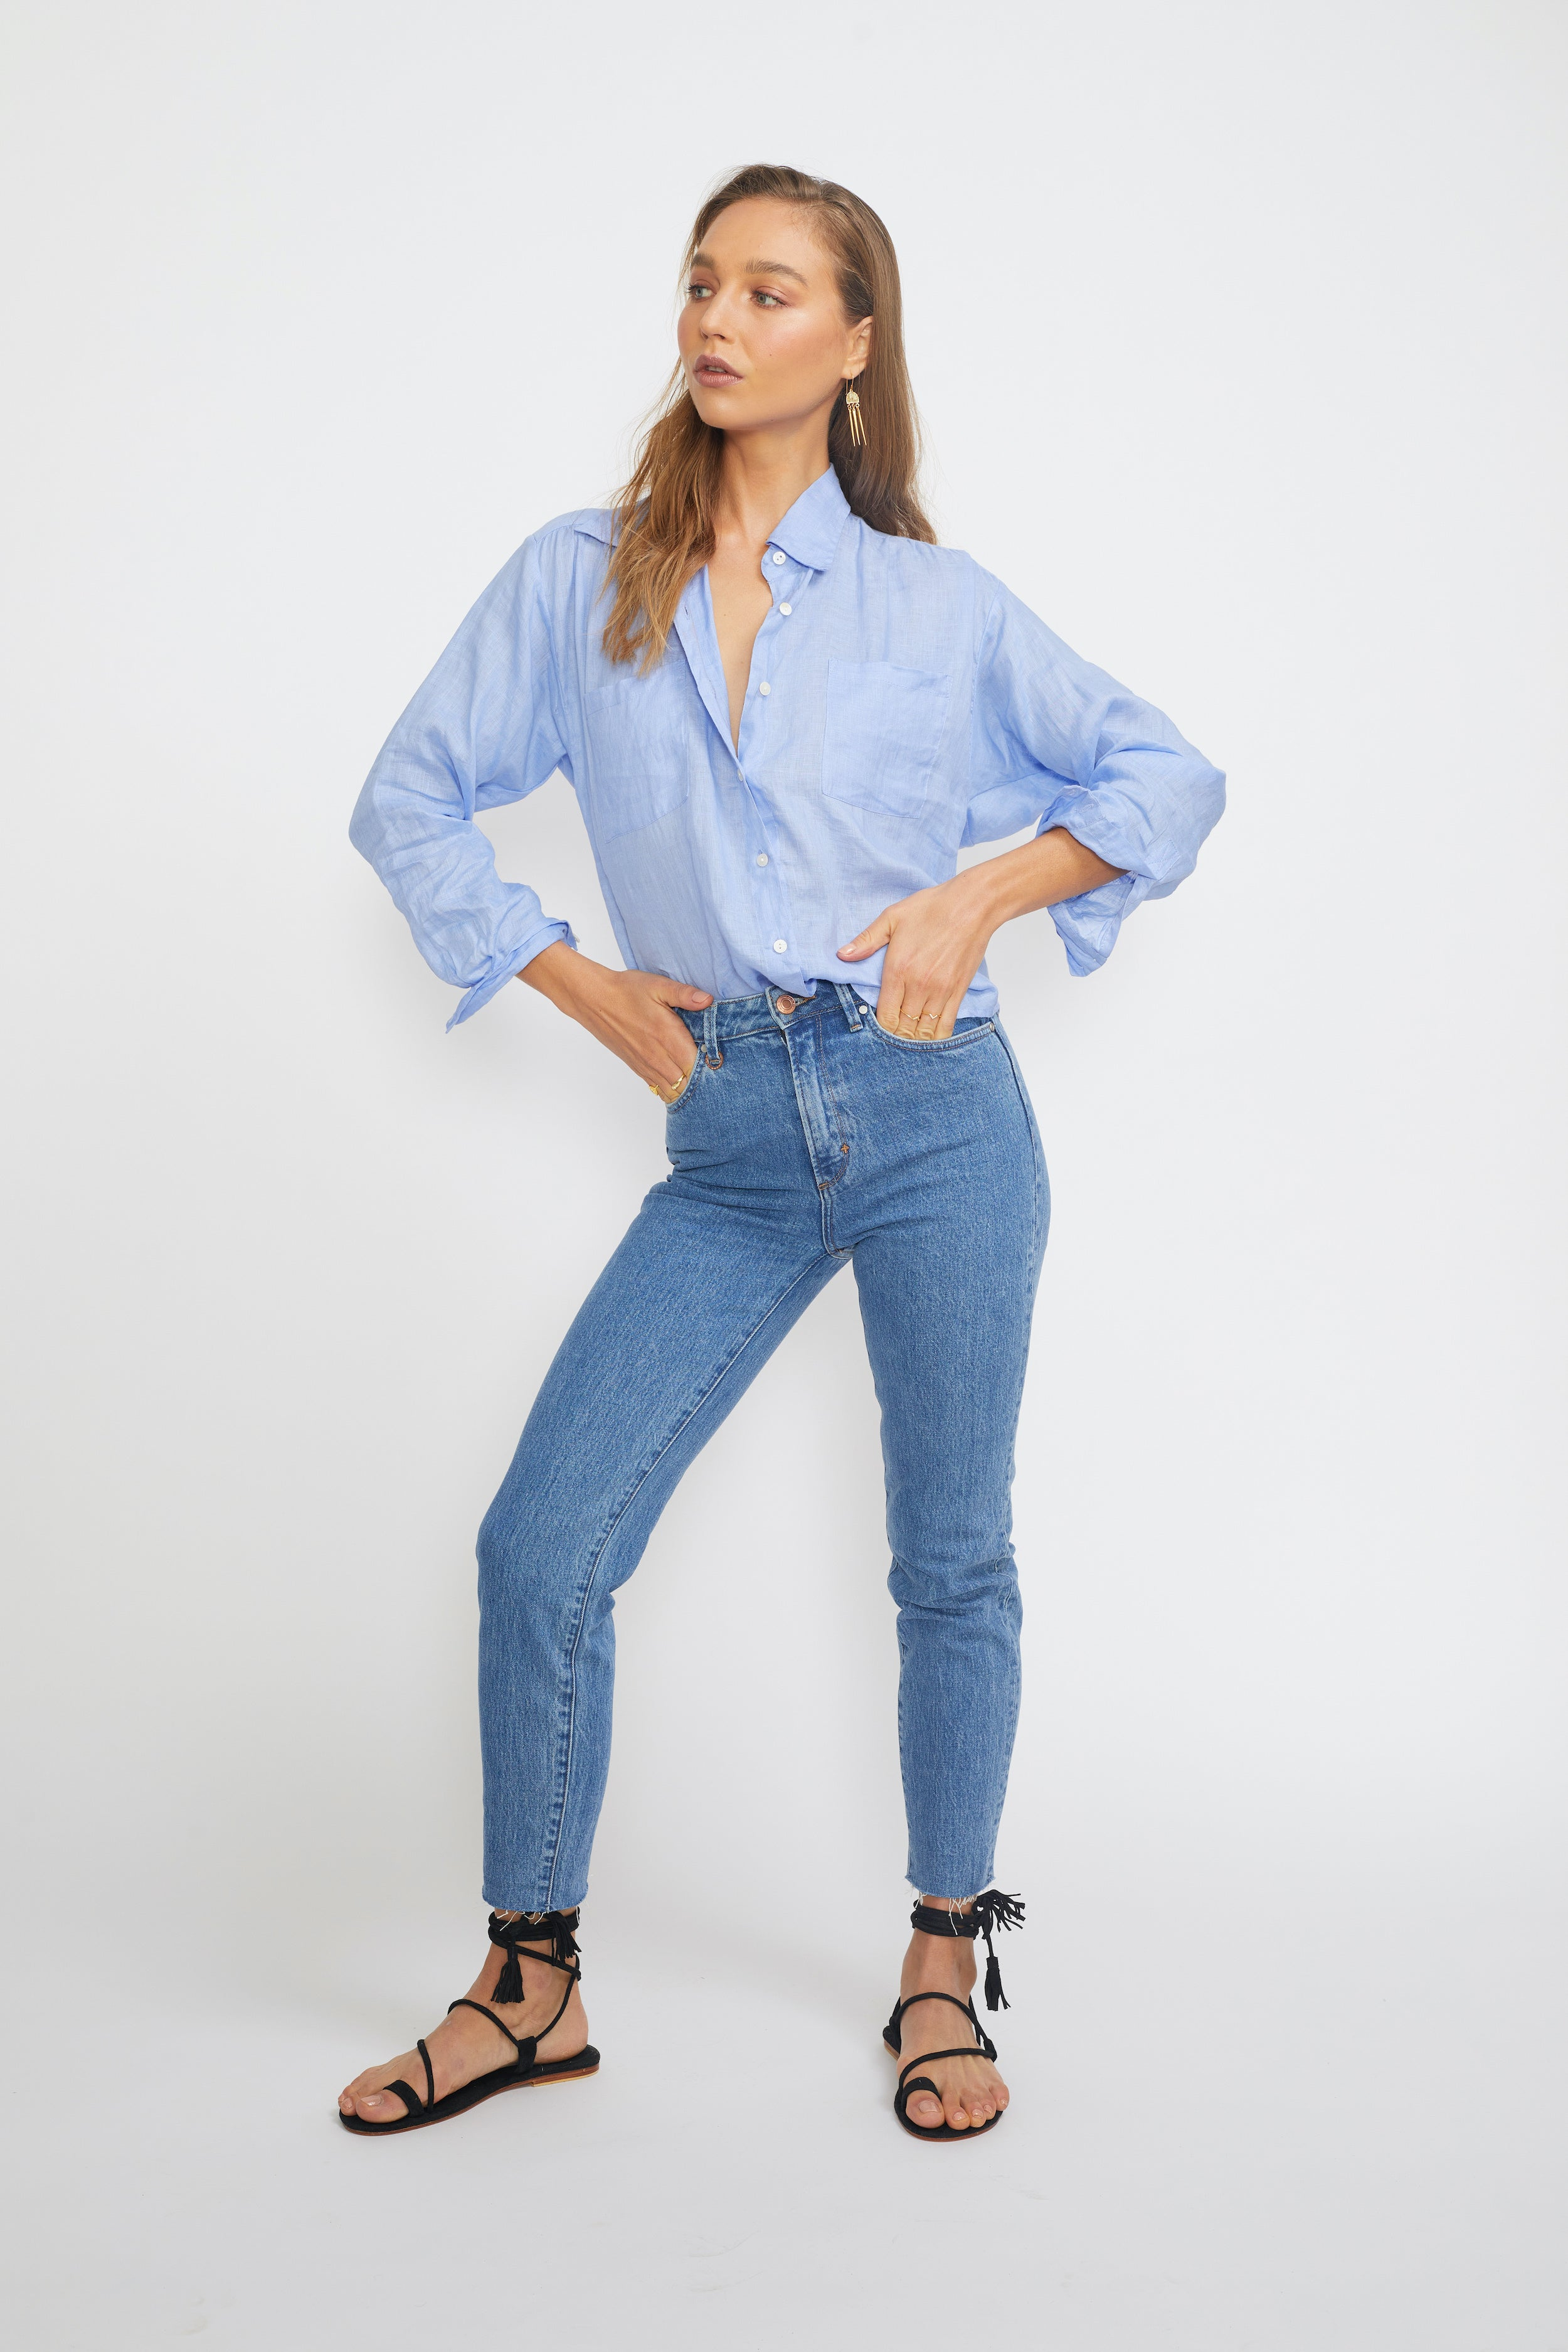 ÉSS THE LABEL Paloma Collared Linen Shirt - French Blue